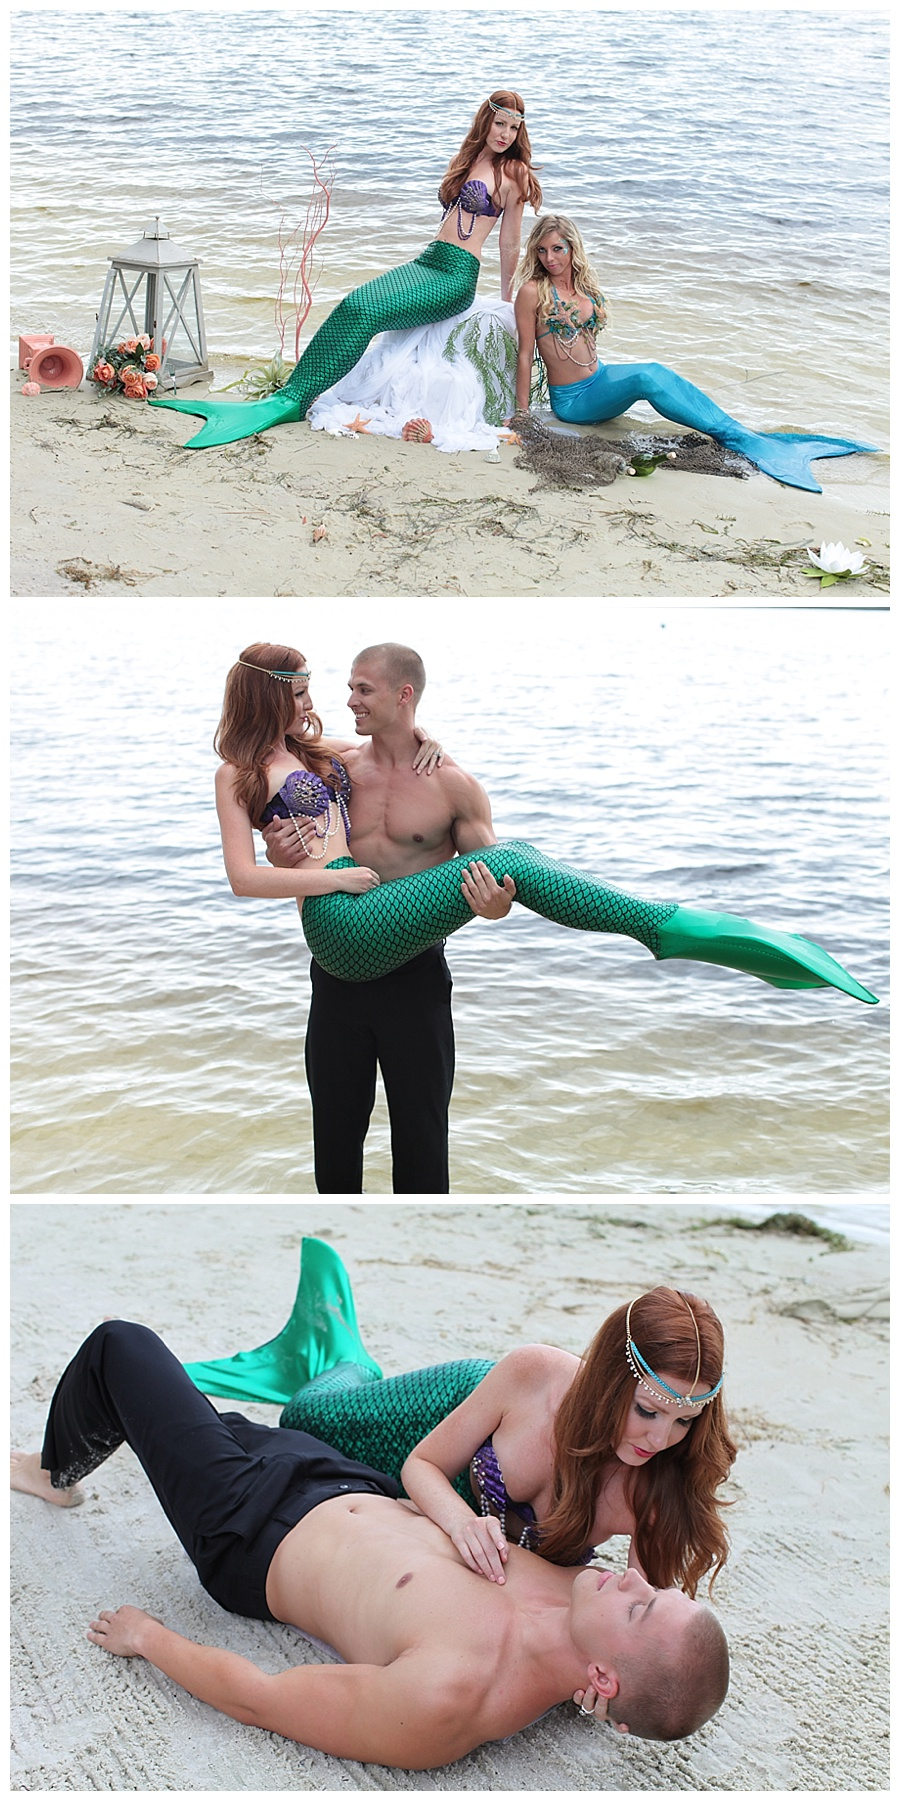 Little Mermaid Gets Married to Price Eric